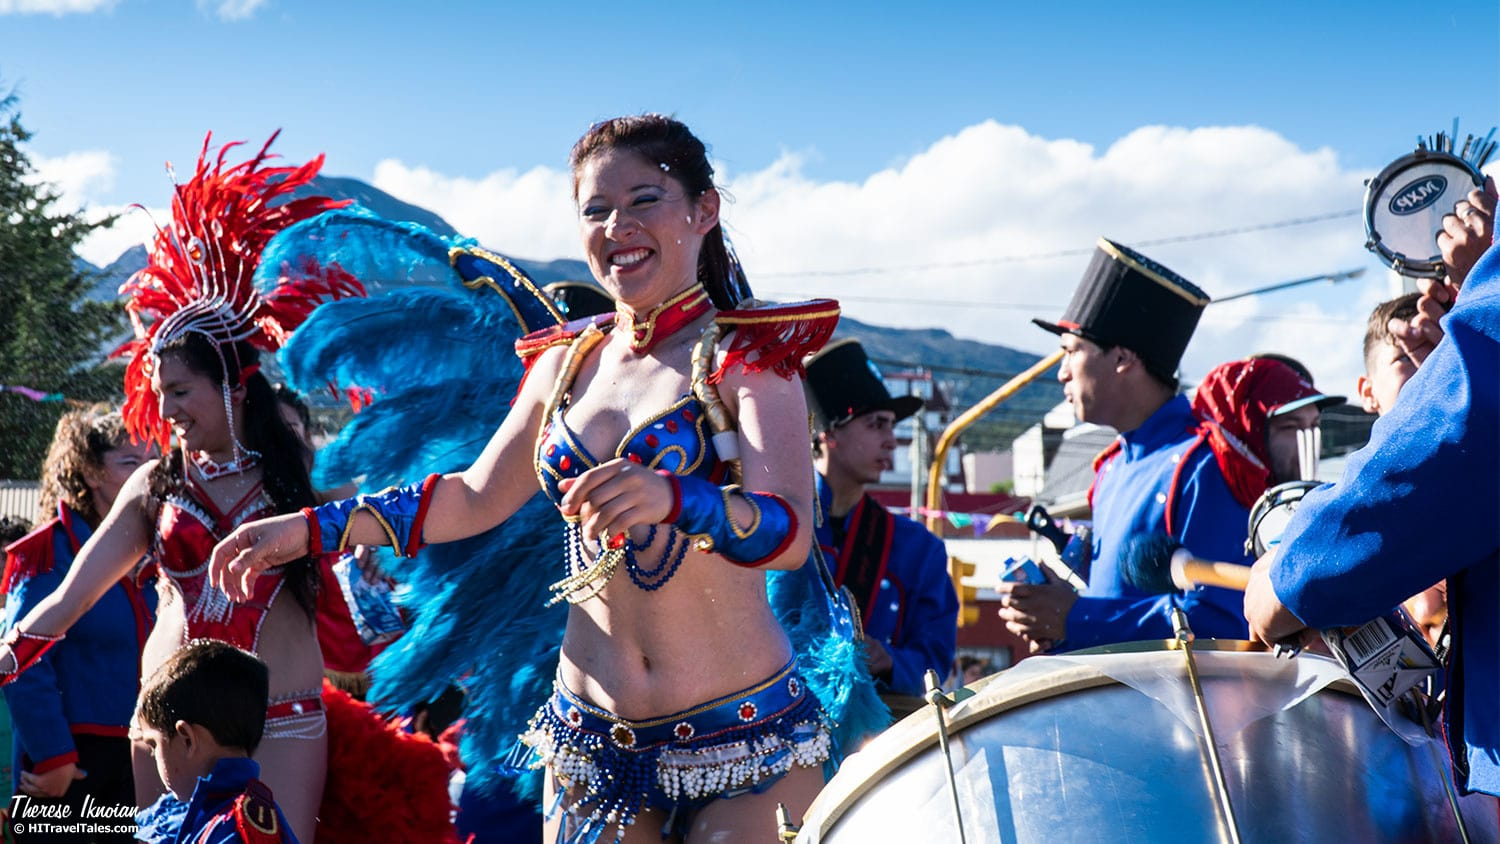 Jiggling, flouncing and swinging is part of the dance party called carnival in Ushuaia.